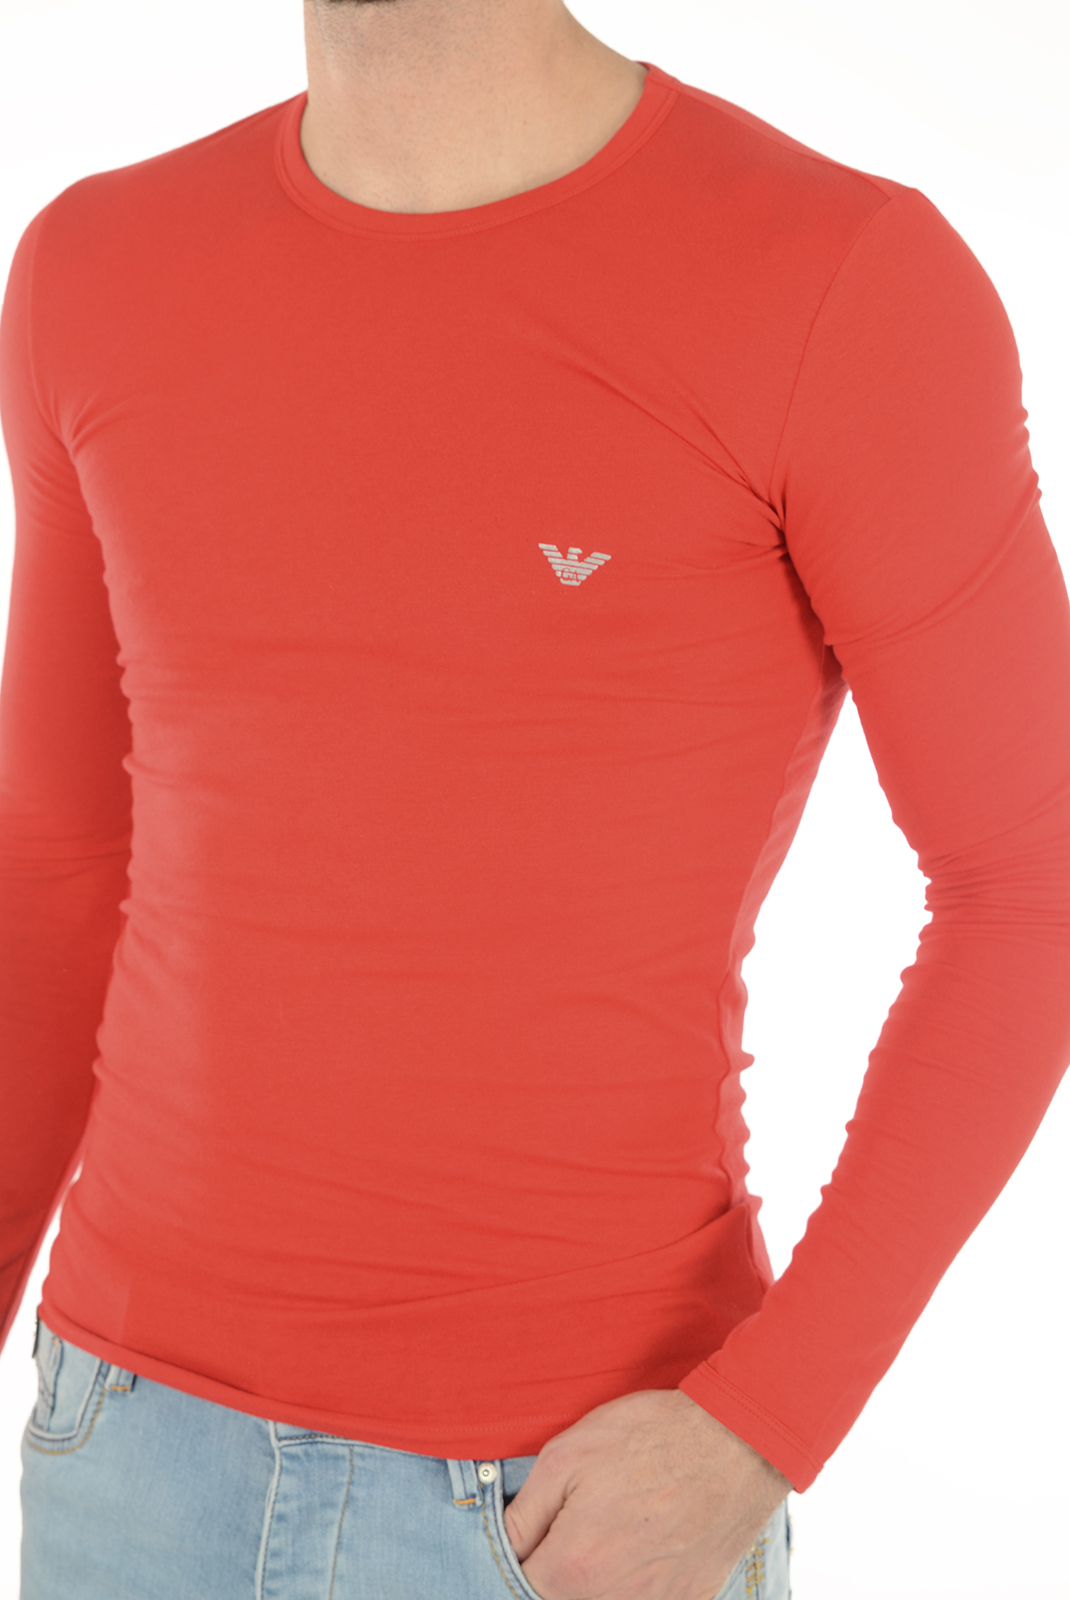 Tee-shirts manches longues  Emporio armani 111023 6A725 074 ROUGE